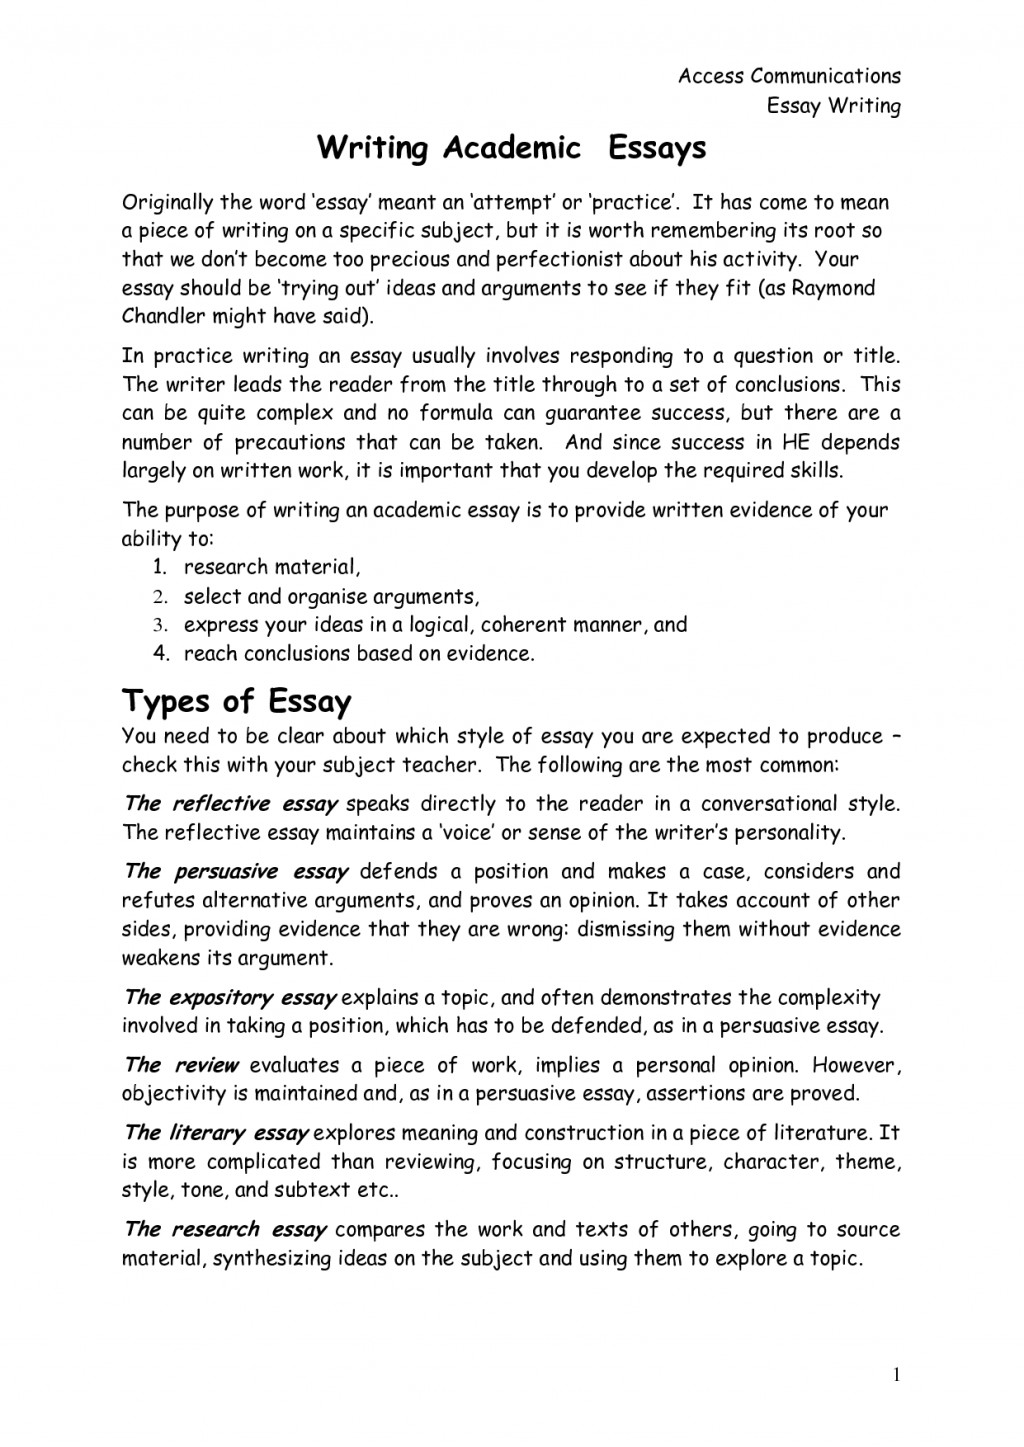 017 Essay For Me Example Phenomenal Titles Social Media Medical Assistant Medicine Large